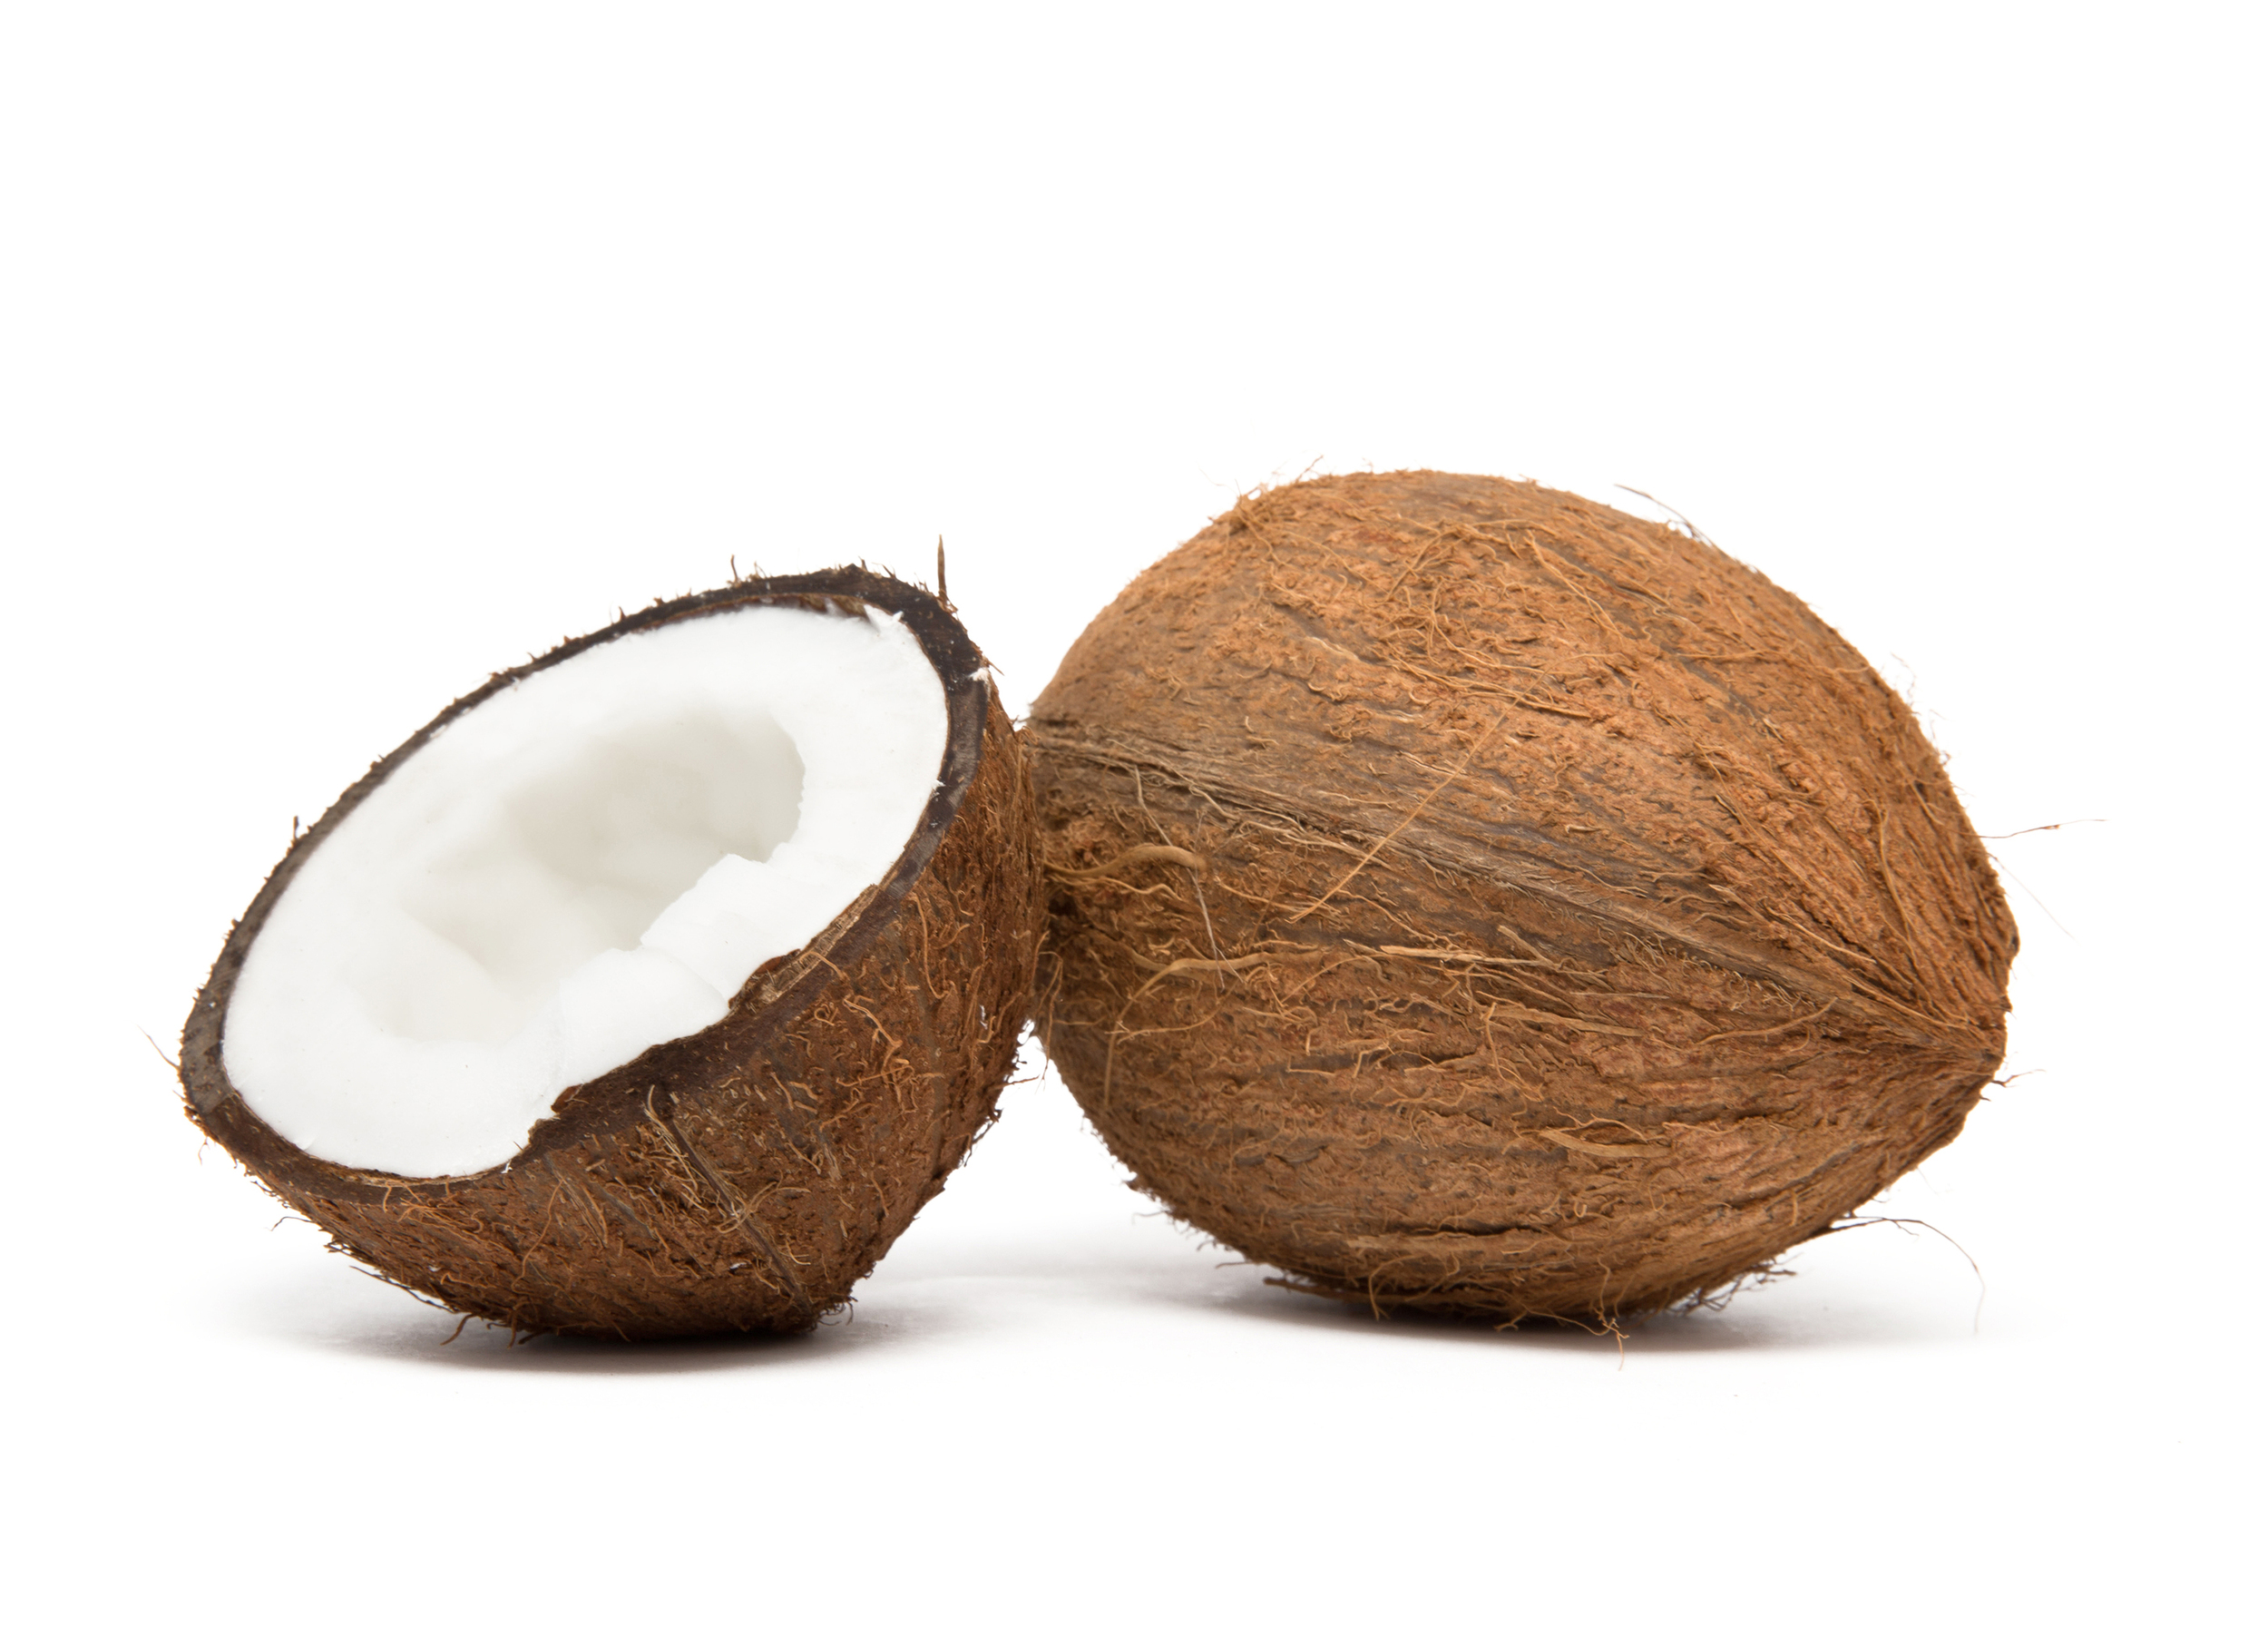 bigstock-coconut-cut-in-half-on-white-b-62636579.jpg